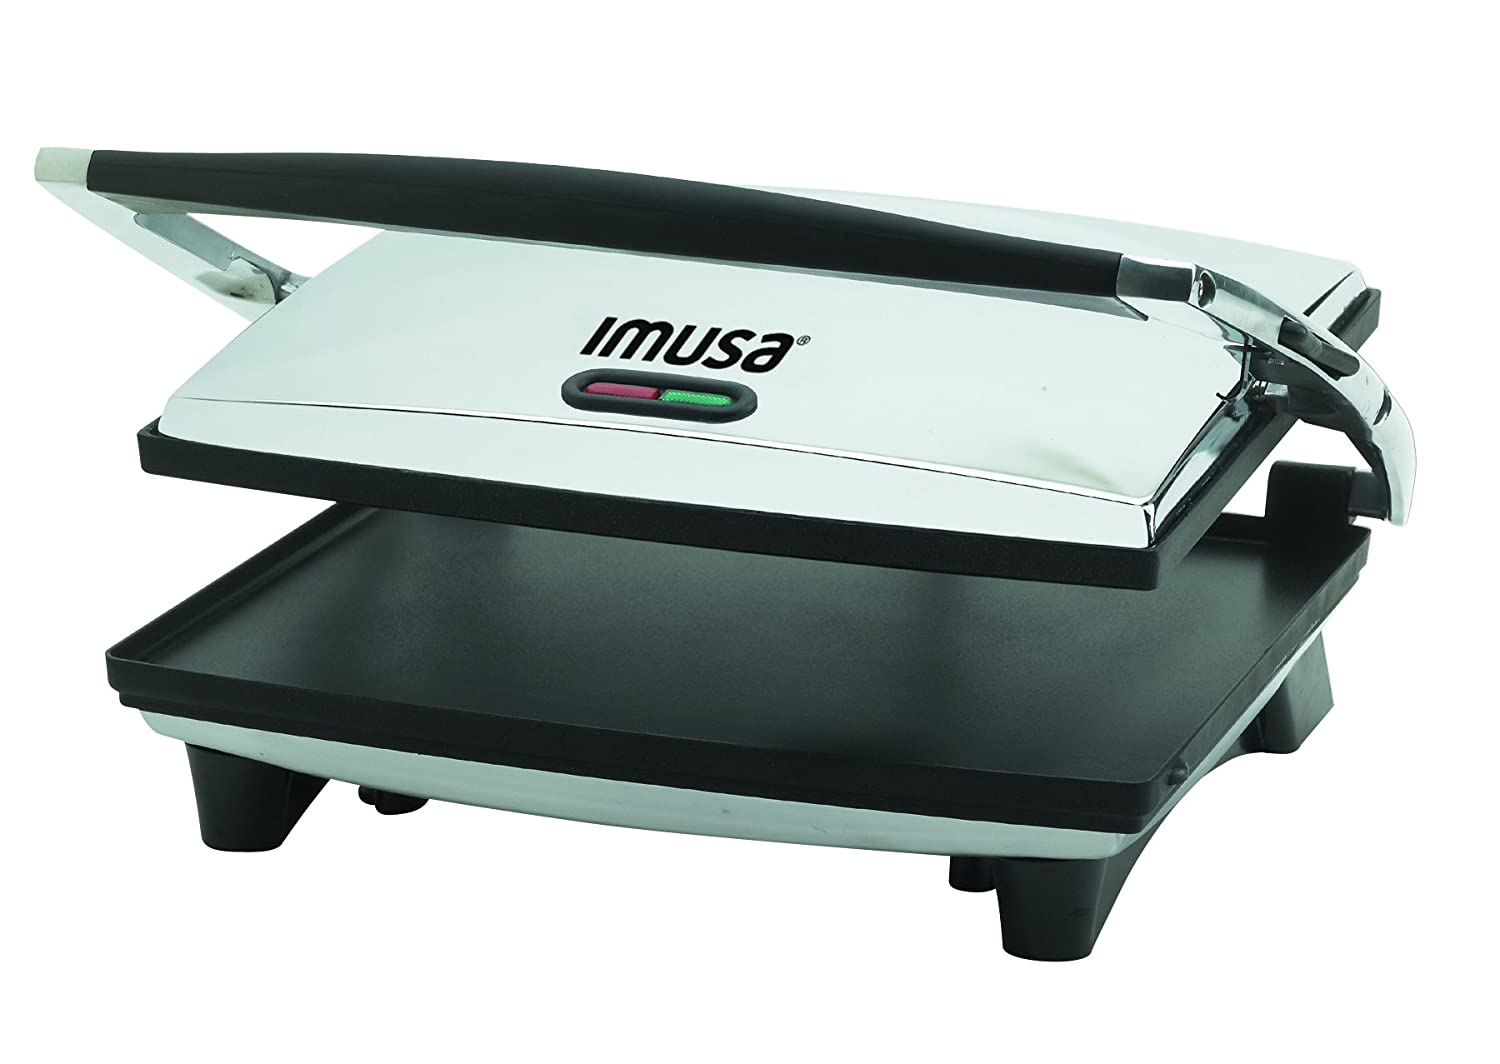 IMUSA USA GAU-80102 Large Electric Panini Press 1400-Watts, Silver